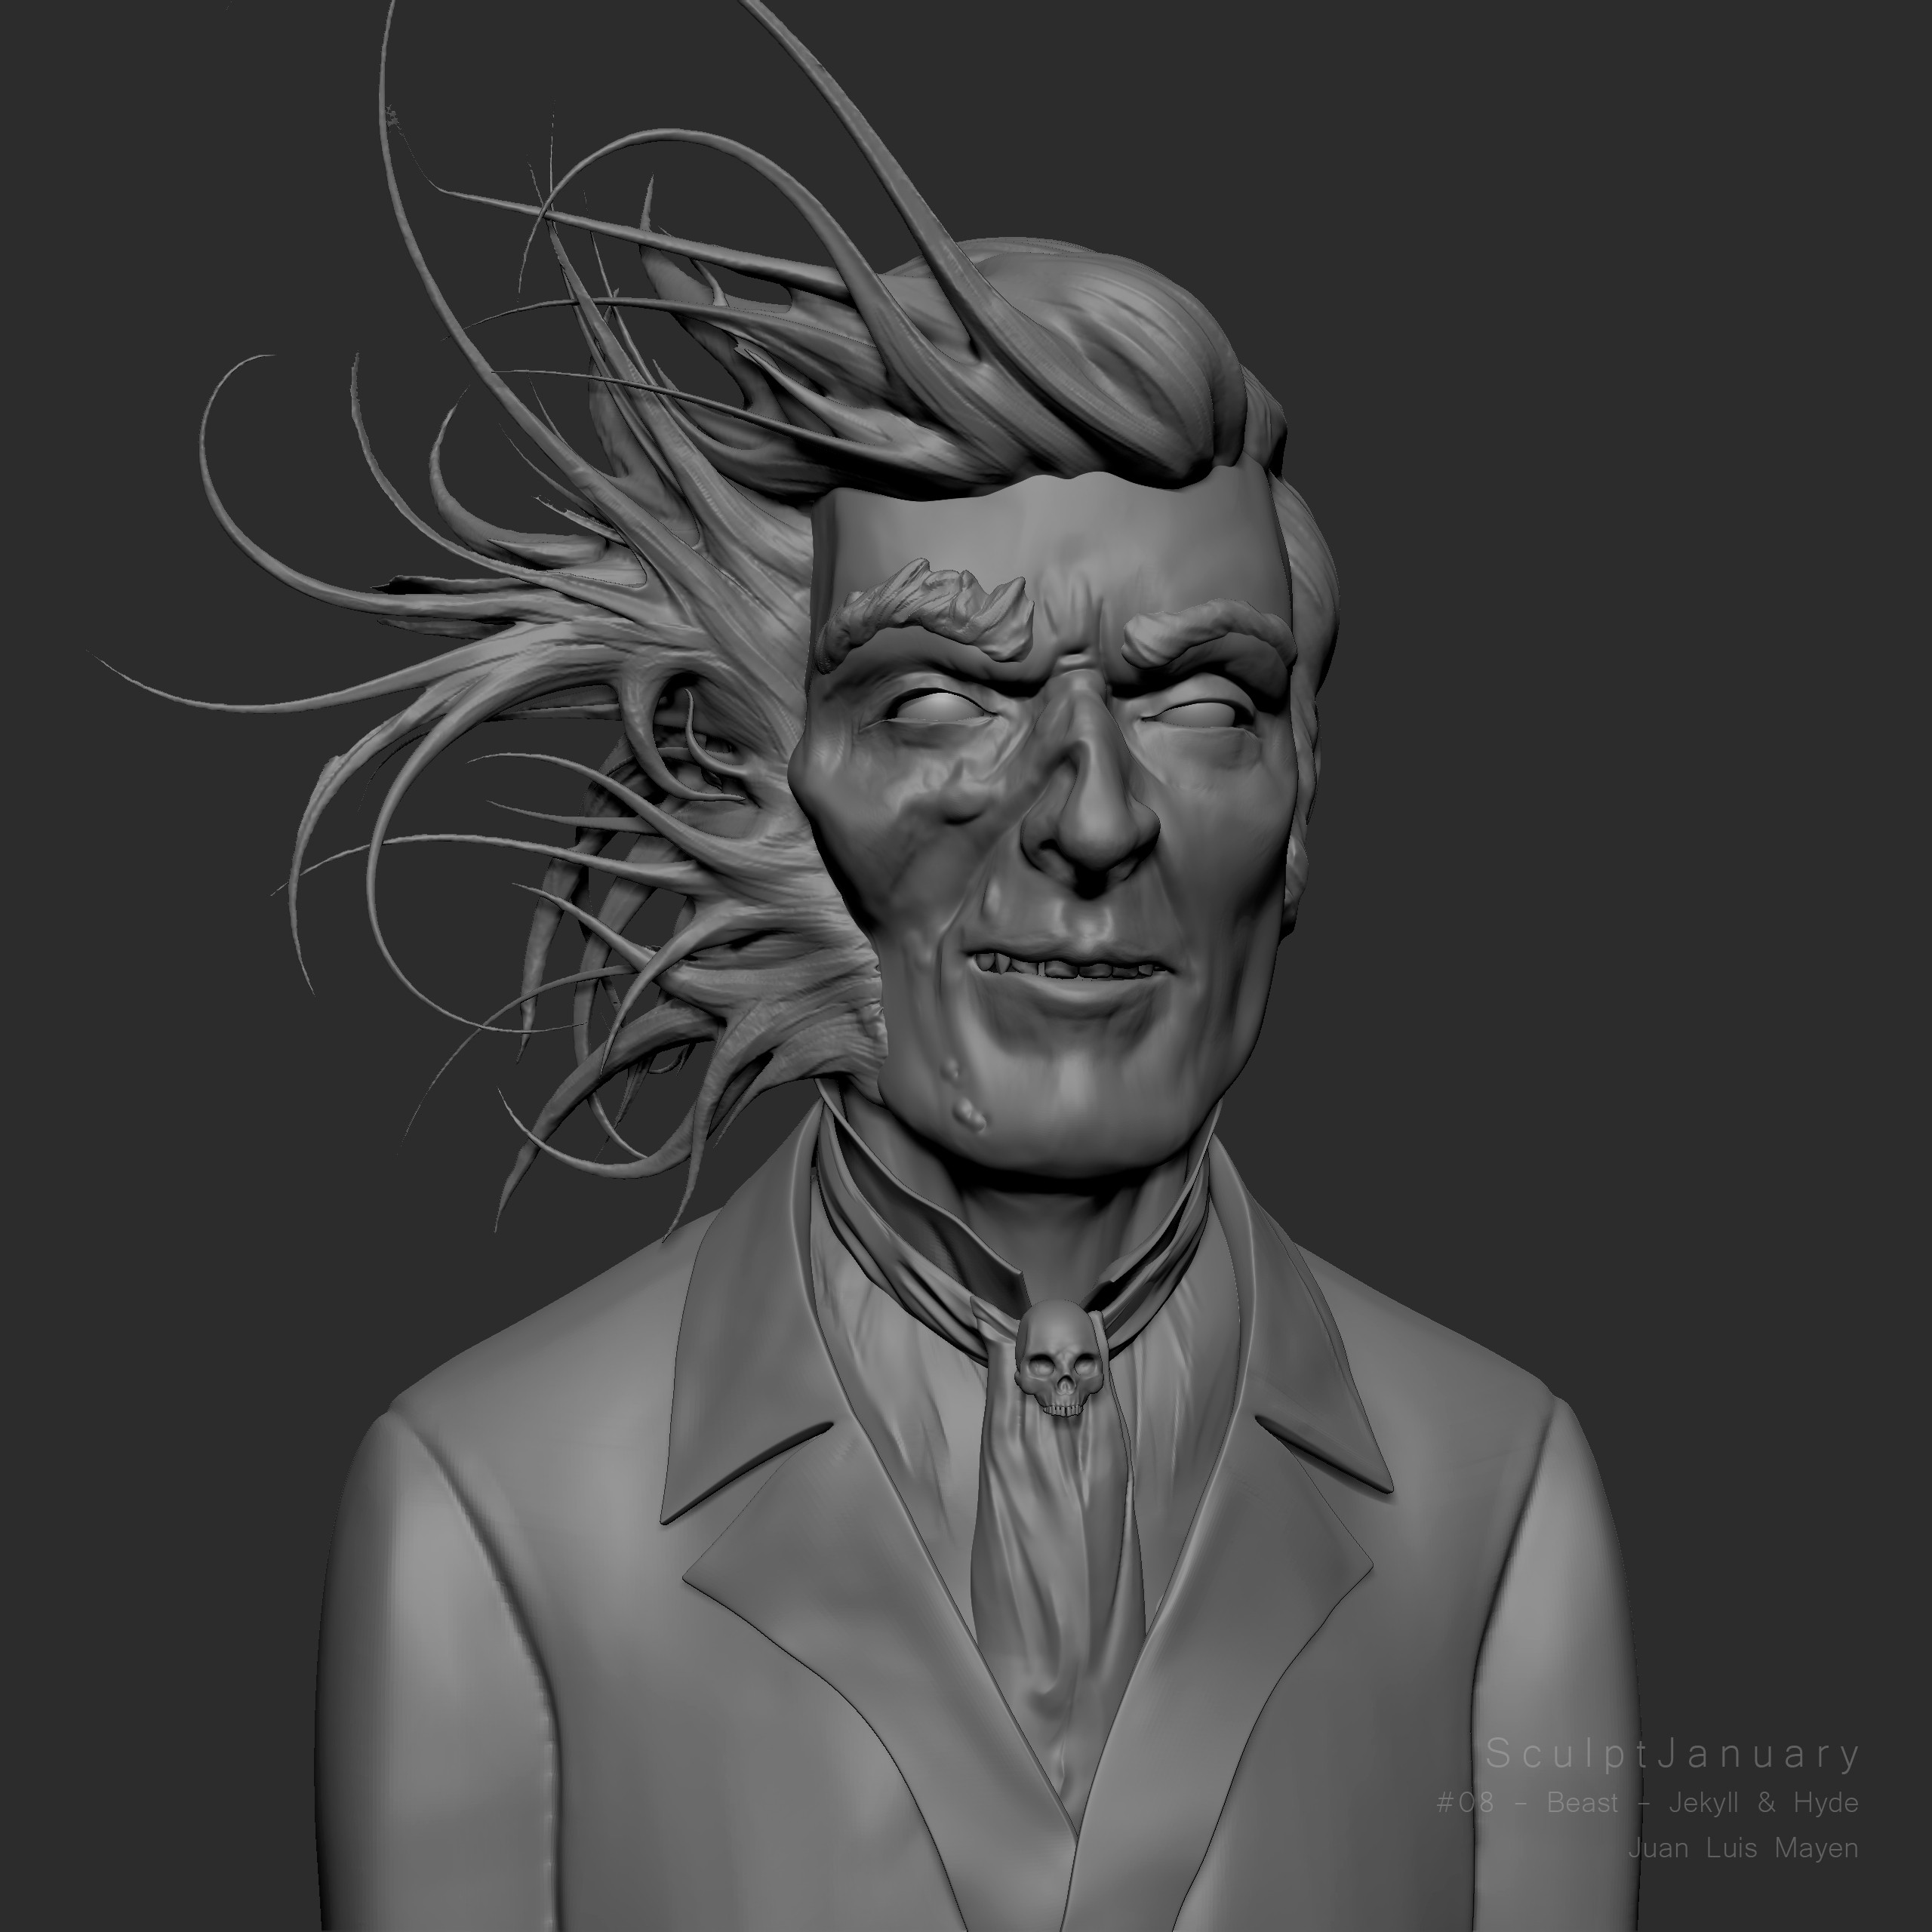 08 - Beast - Jekyll & Hyde (Zbrush screenshot)